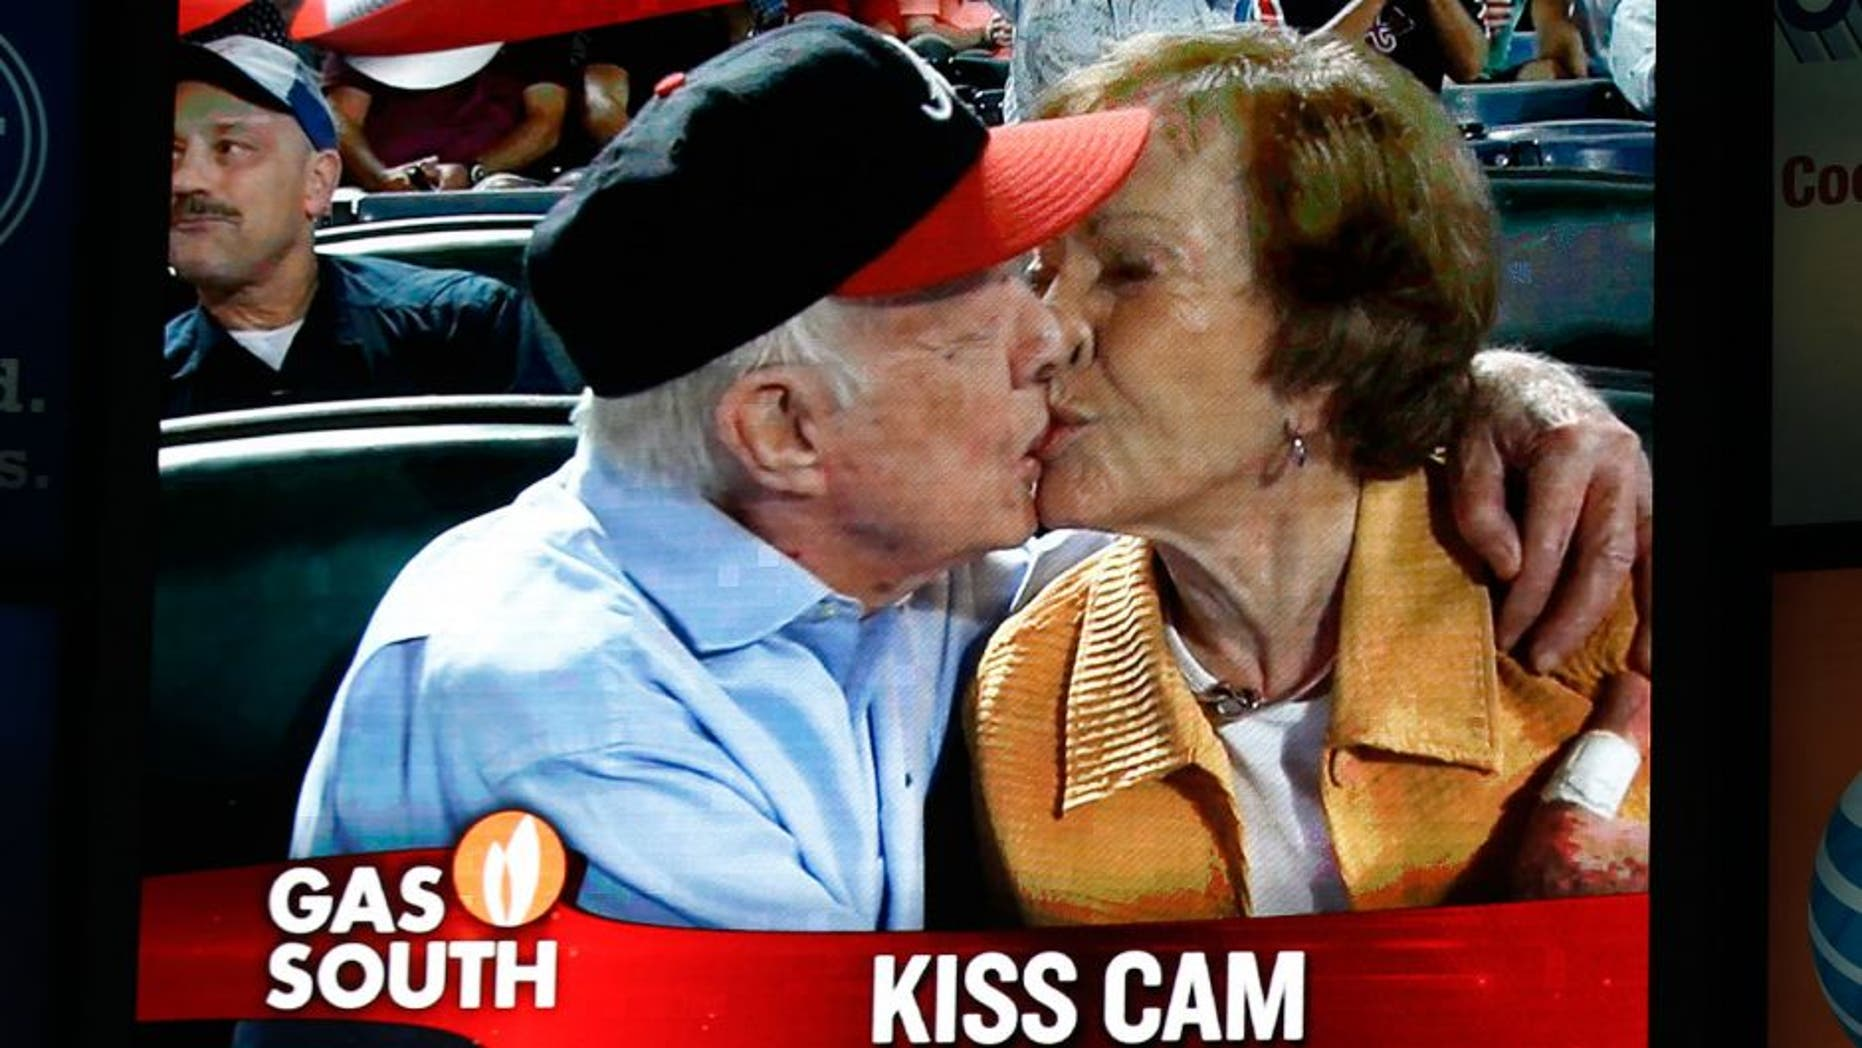 """Former President Jimmy Carter kisses his wife,Rosalynn, on the """"Kiss Cam"""" during a baseball game between the Atlanta Braves and the Toronto Blue Jays on Thursday, Sept. 17, 2015, in Atlanta. Carter recently announced he has cancer. (AP Photo/John Bazemore)"""